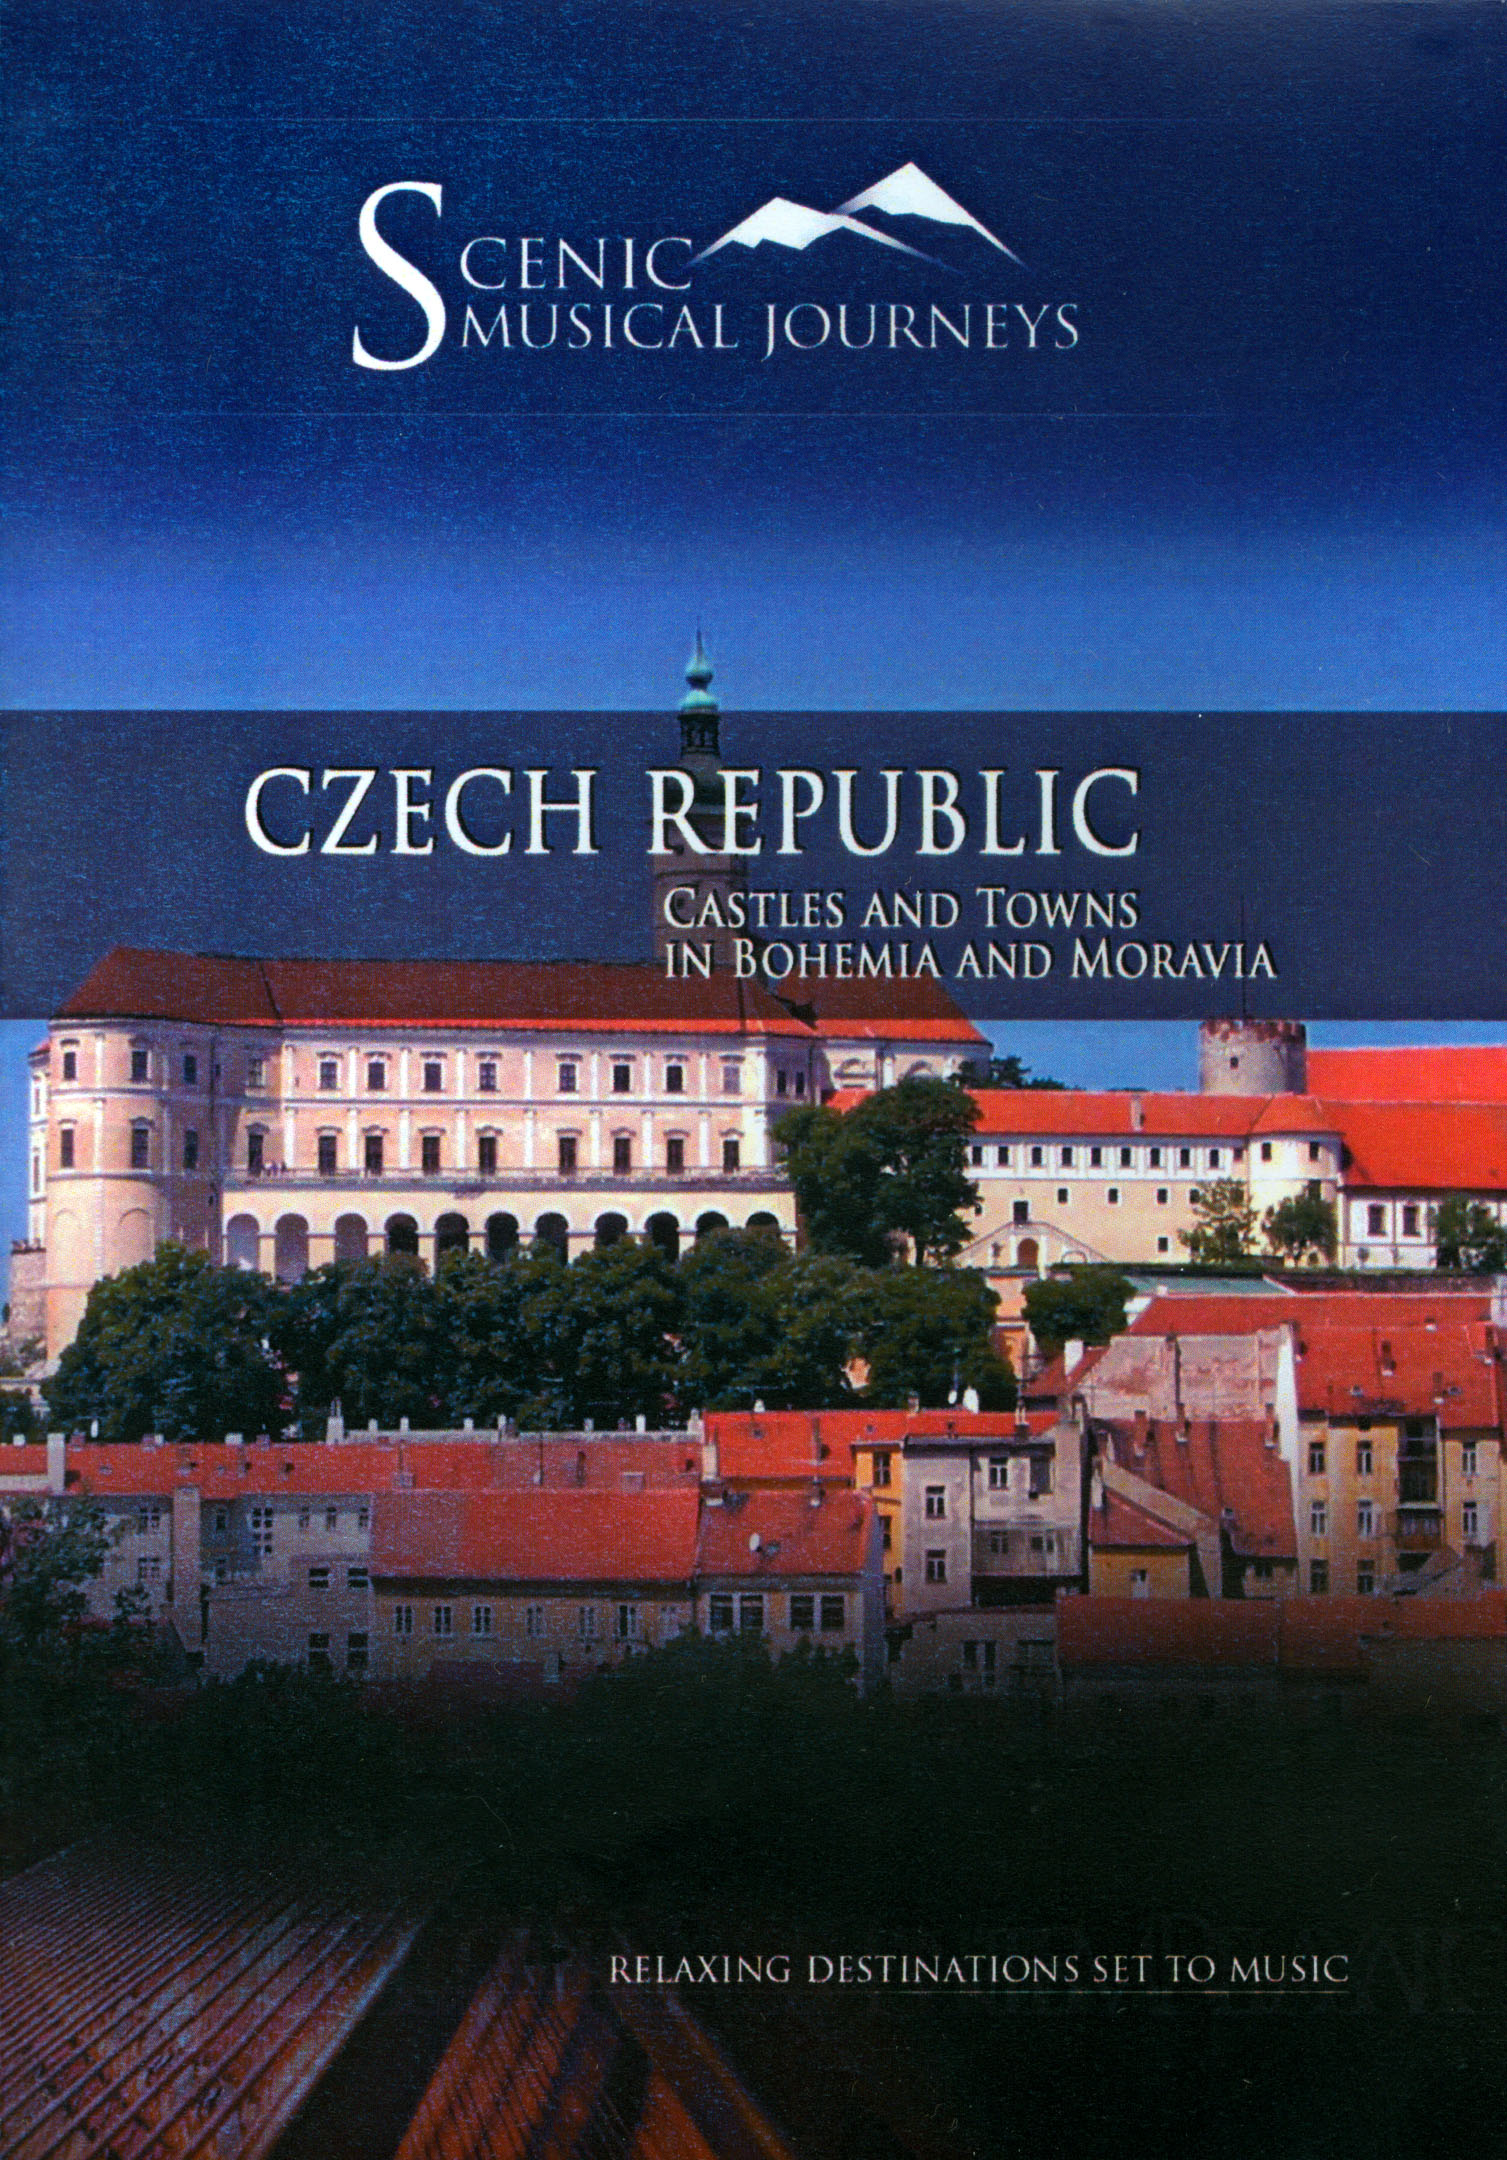 Scenic Musical Journeys: Czech Republic - Castles and Towns in Bohemia and Moravia